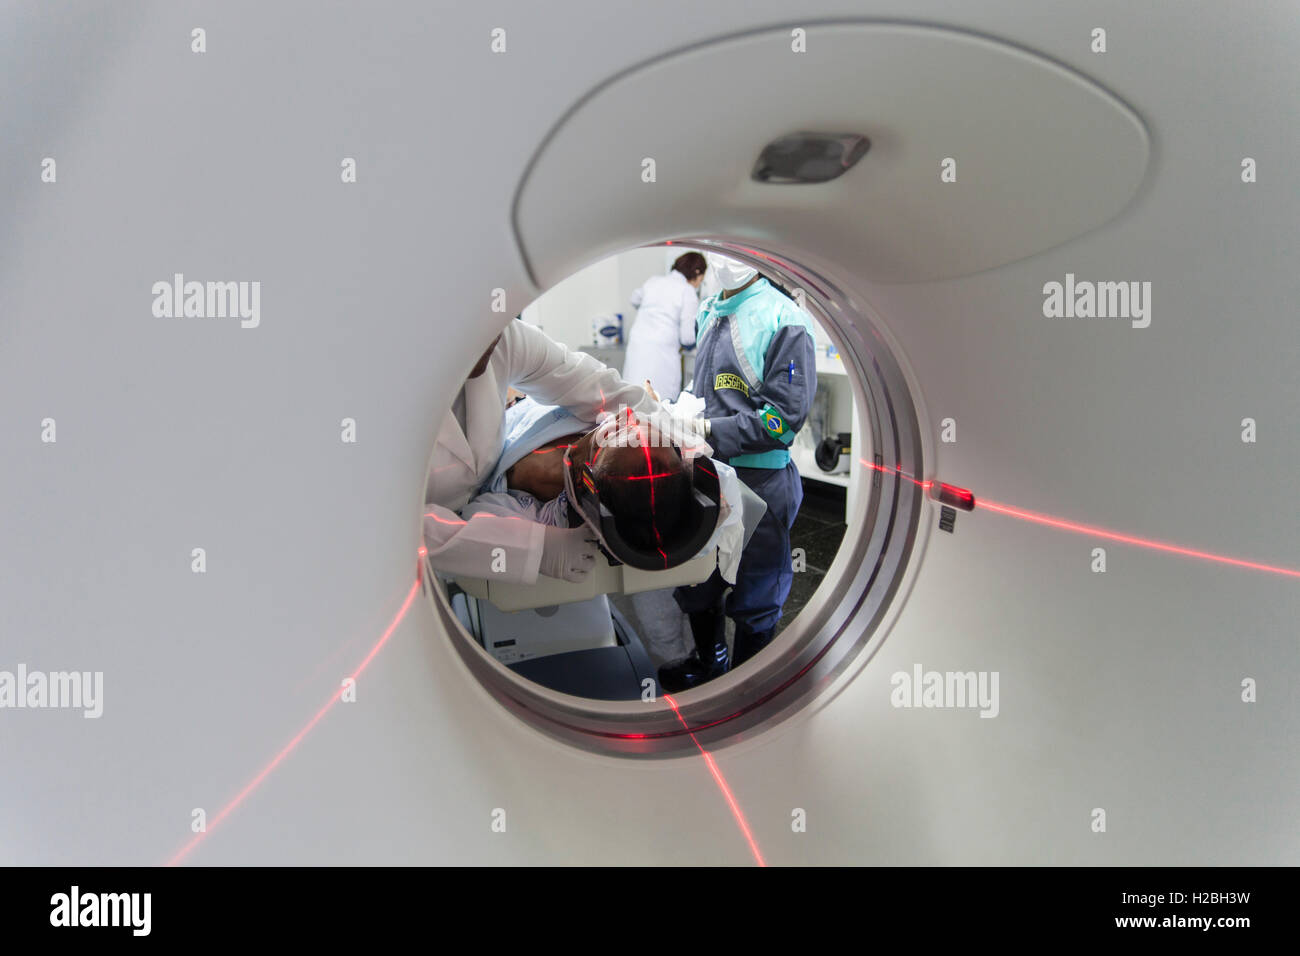 Patient in medical MRI scanner, magnetic resonance imaging, a medical imaging technique used in radiology to image - Stock Image